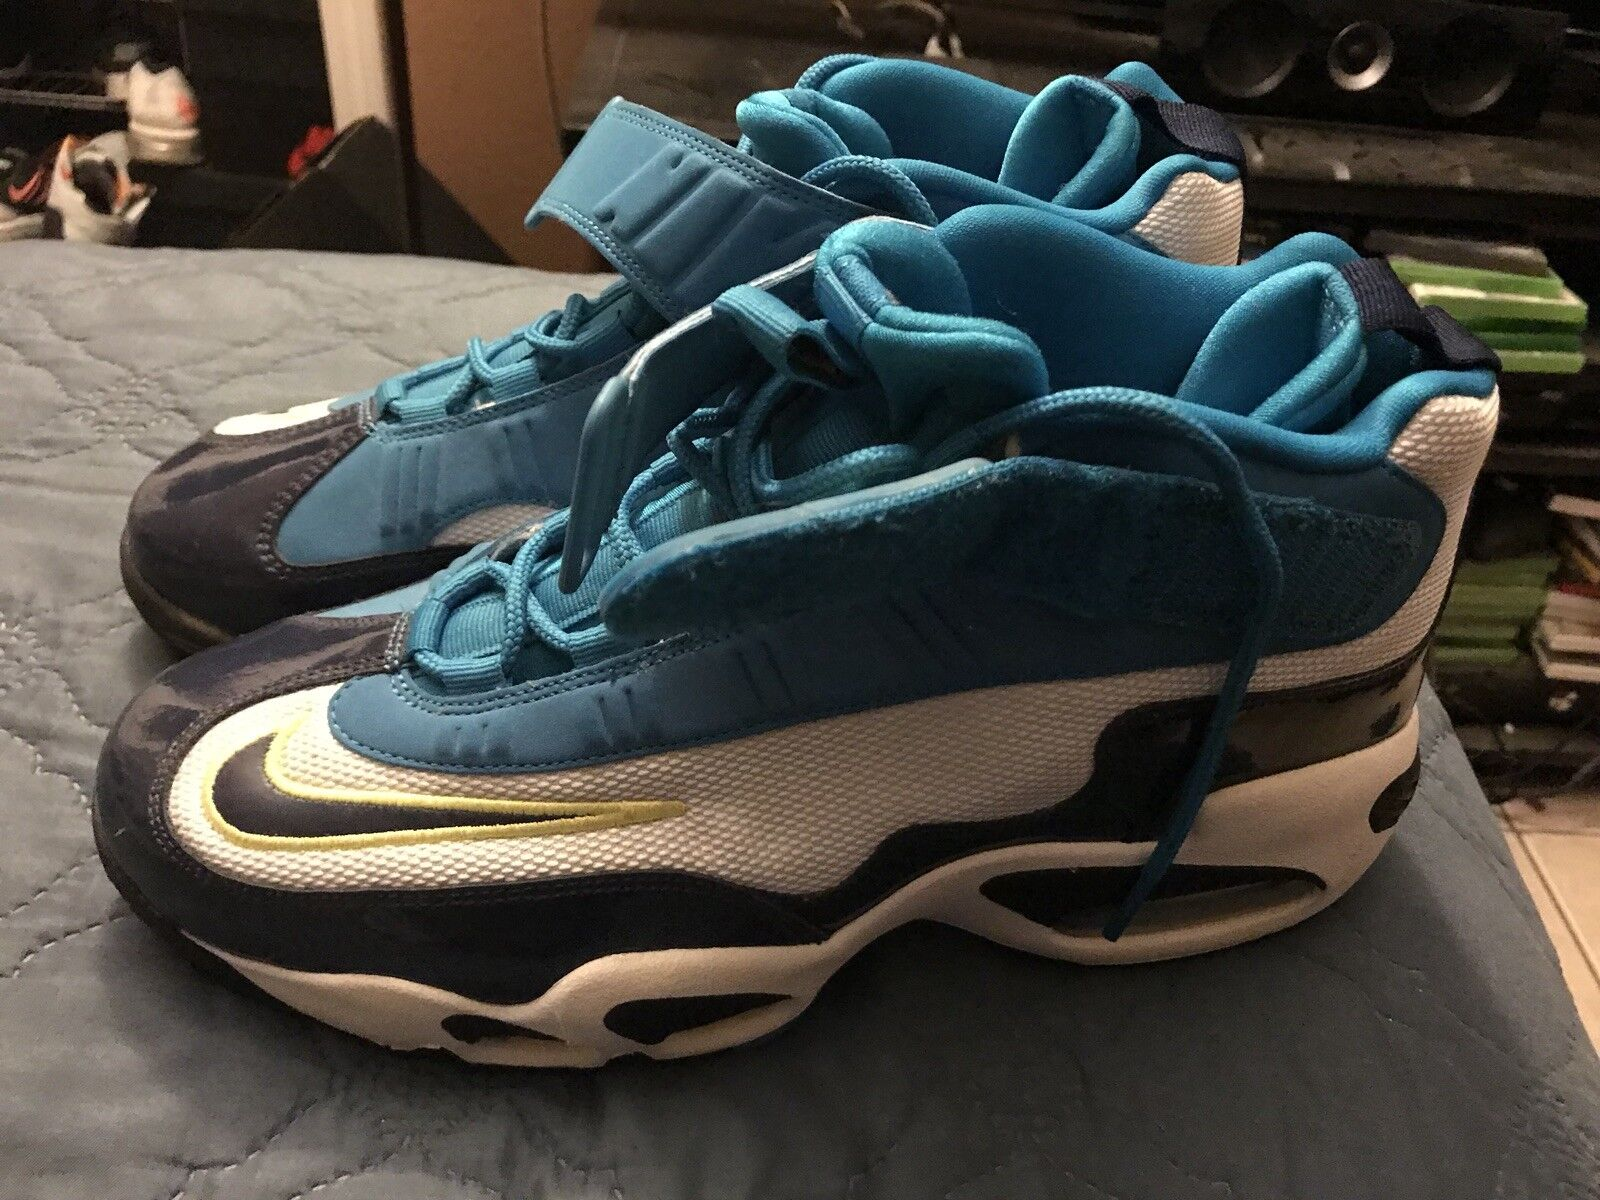 Nike Air Griffey Max 1 Pure Platinum-Midnight Navy-Neo Turquoise Mens size 9.5